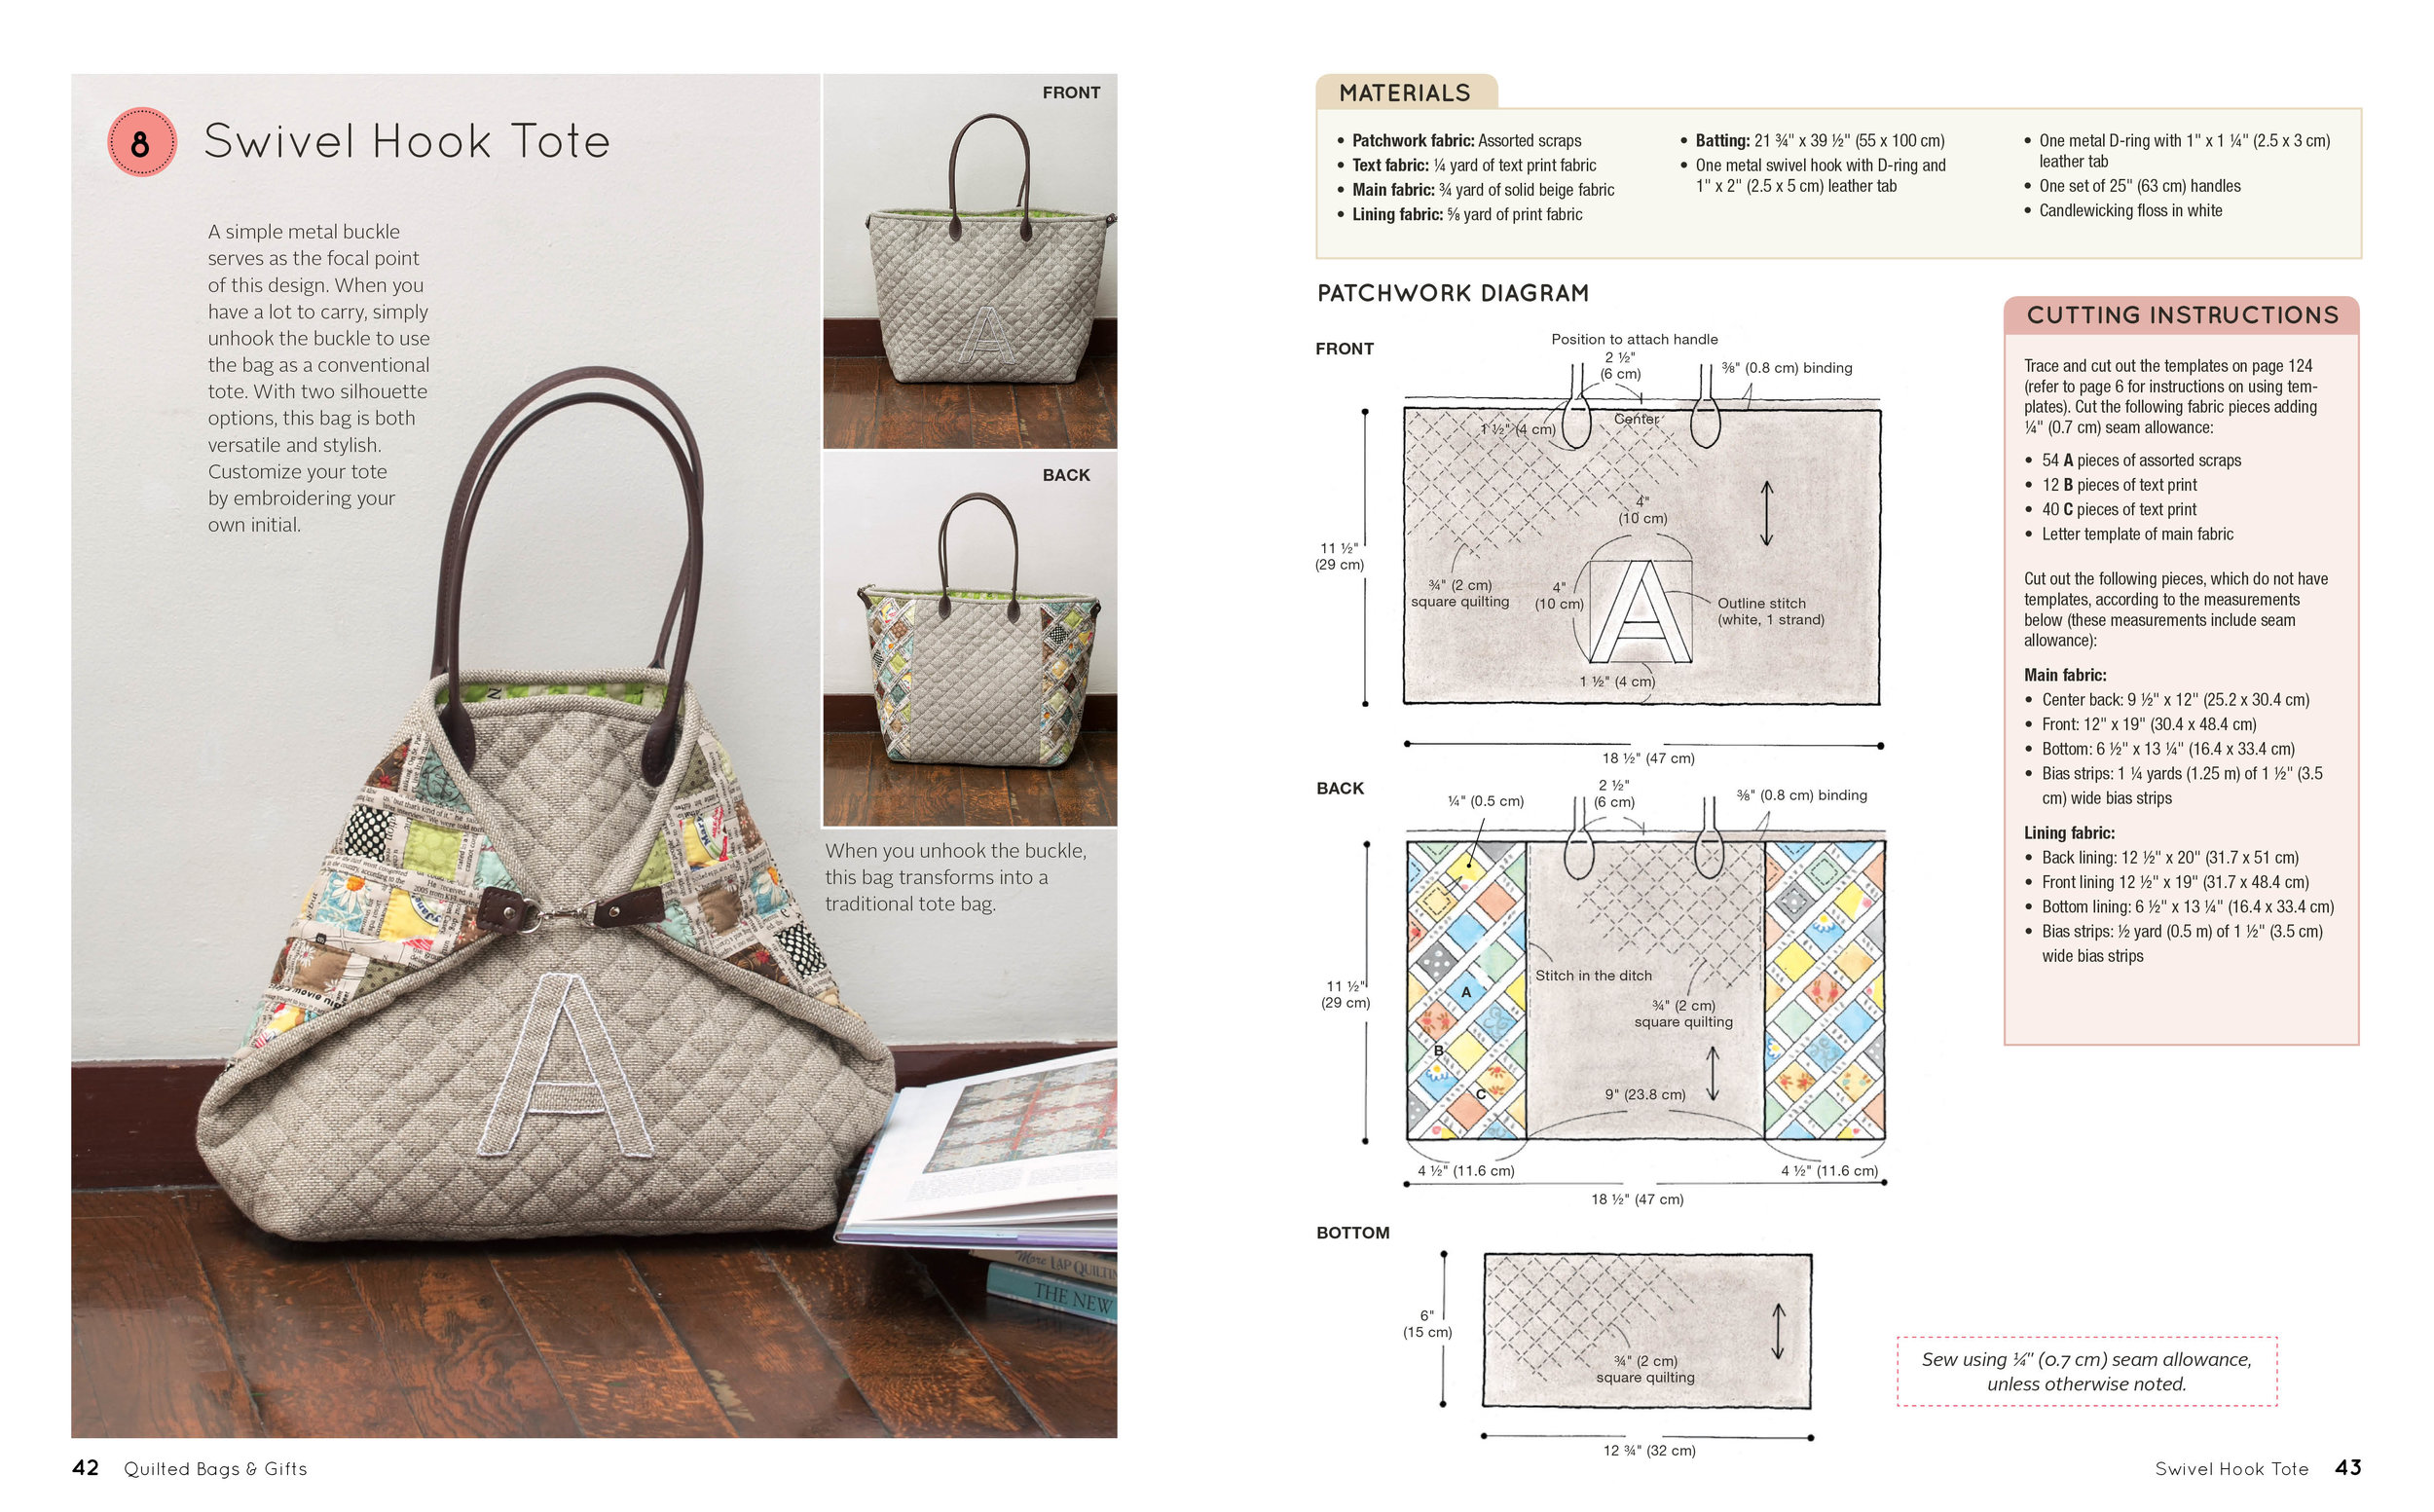 Quilted Bags and Gifts 42.43.jpg